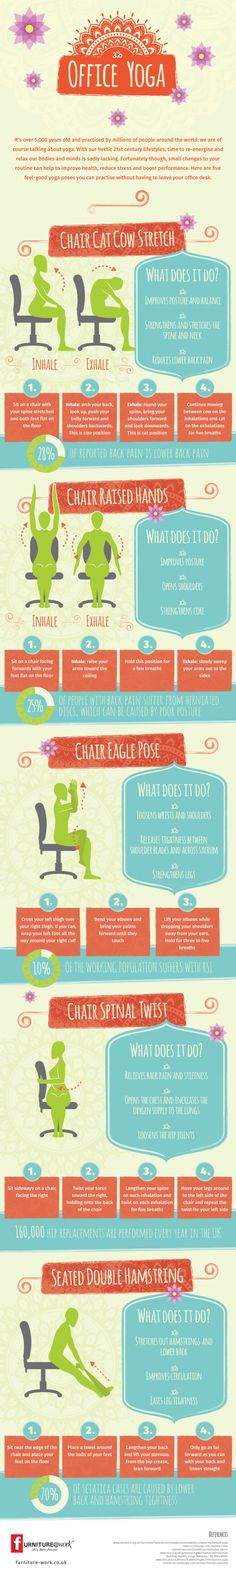 Office Yoga: 5 Poses To Reduce Stress And Lower Back Pain While At Work